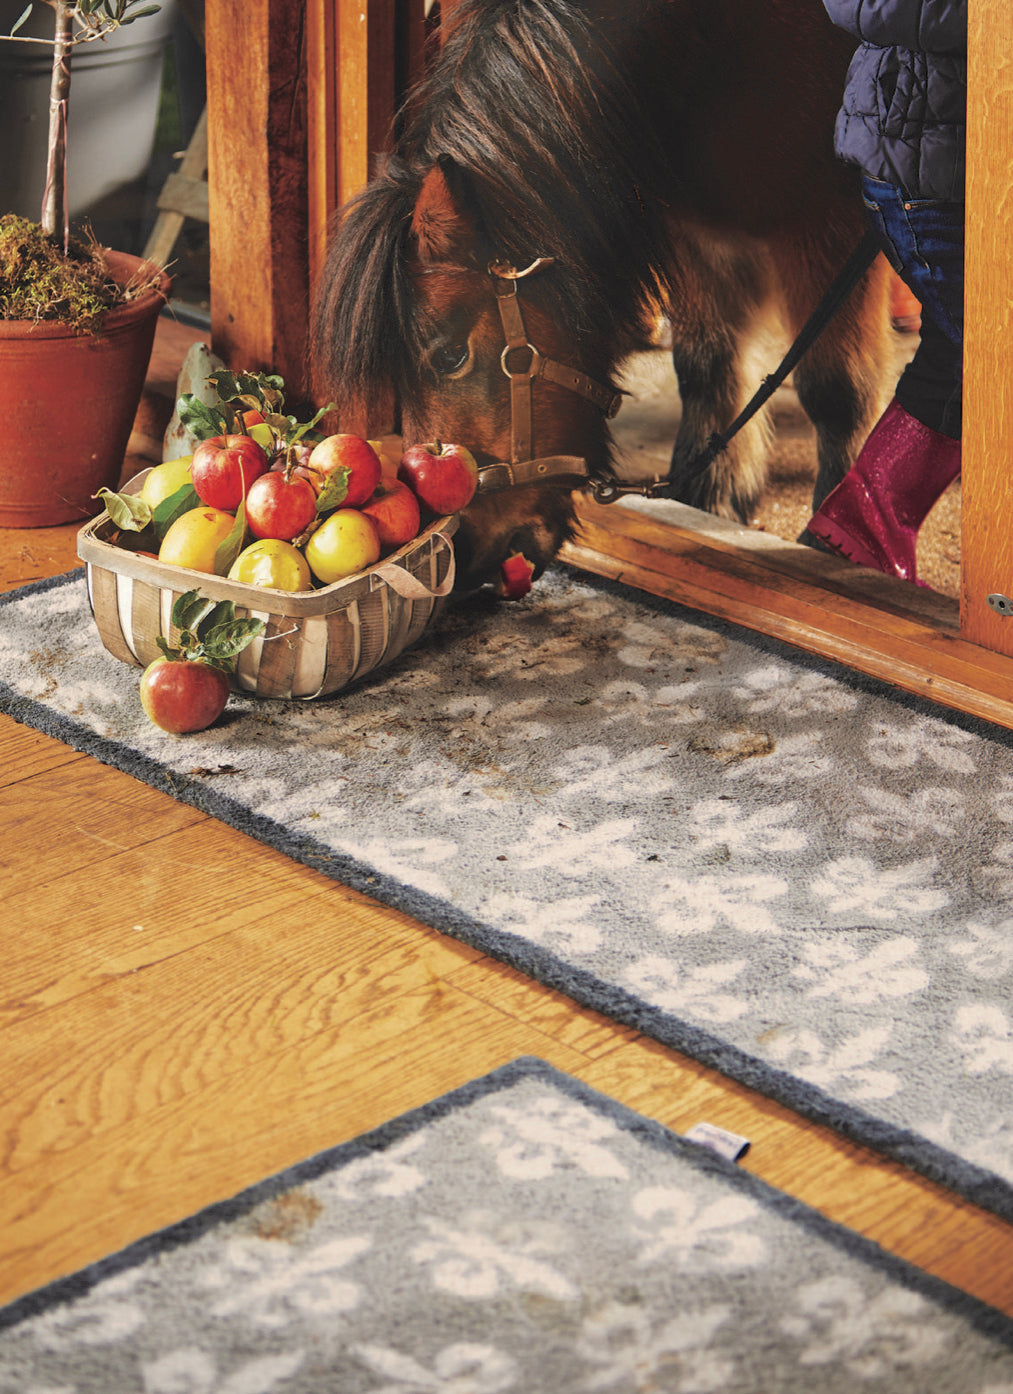 Hug Rug Pattern Home 36 Grey pattern indoor rugs home decor style accessories